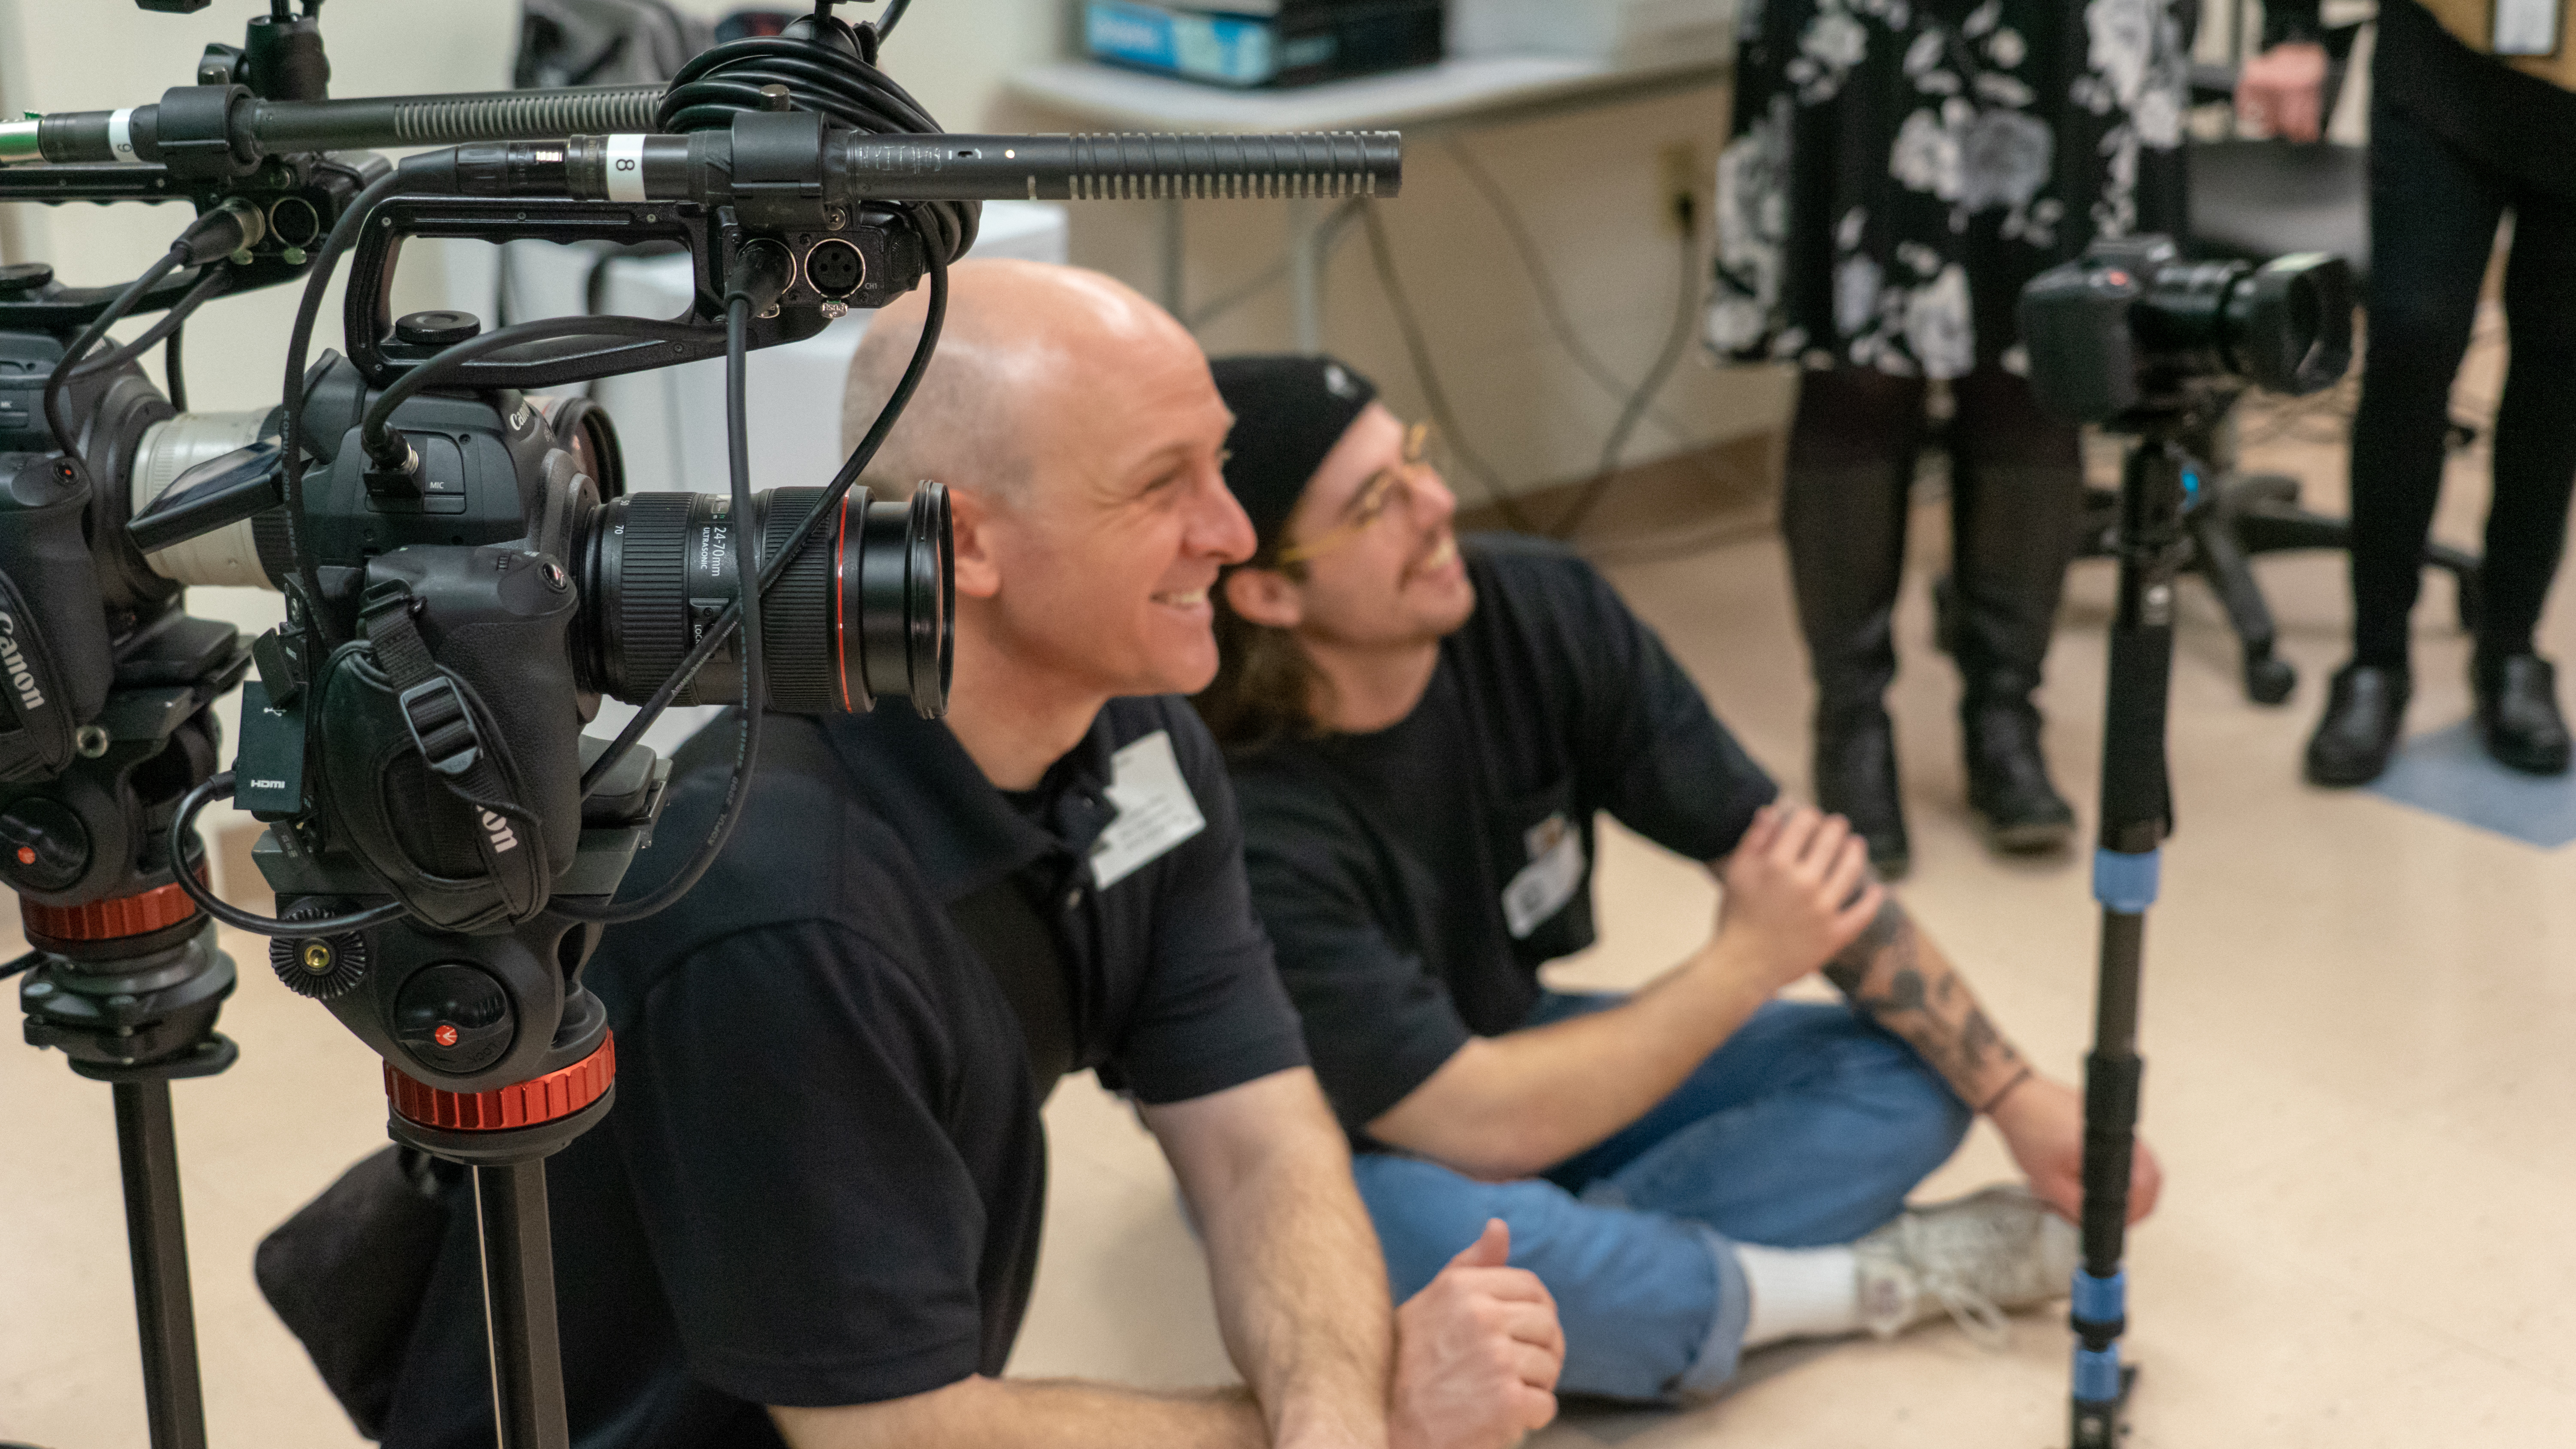 Paul Wasneski and Peter Straehl need to juggle multiple aspects of video production when filming, including monitoring cameras and simultaneously conducting interviews.